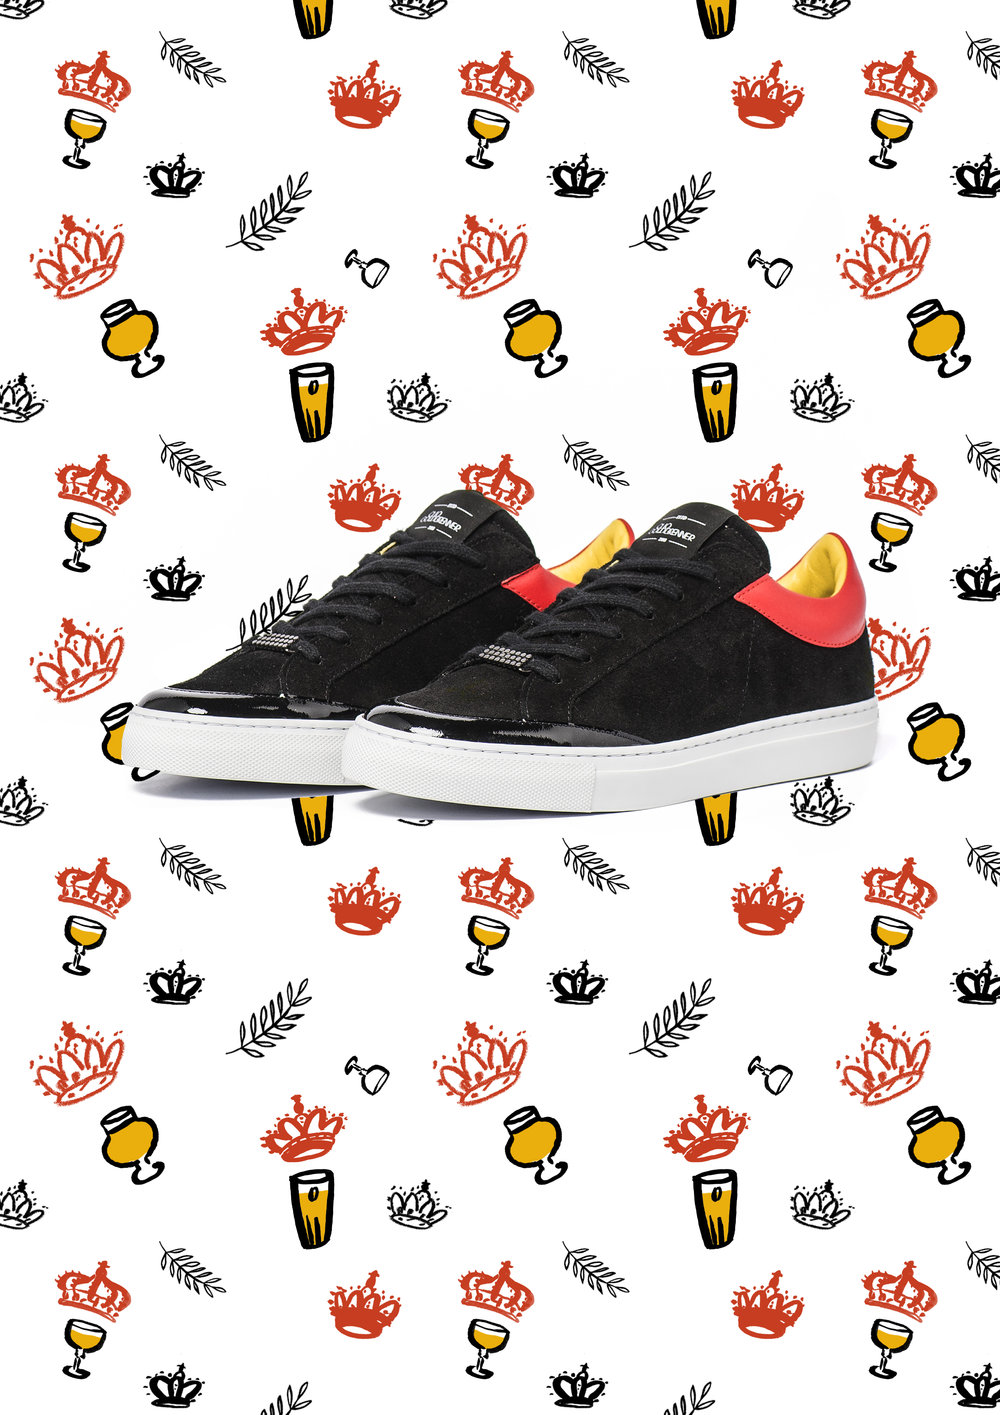 Design for Clio Goldbrenner. Patterns to go alongside the Achille 21st trainers, limited edition for Belgium National Day 2017.